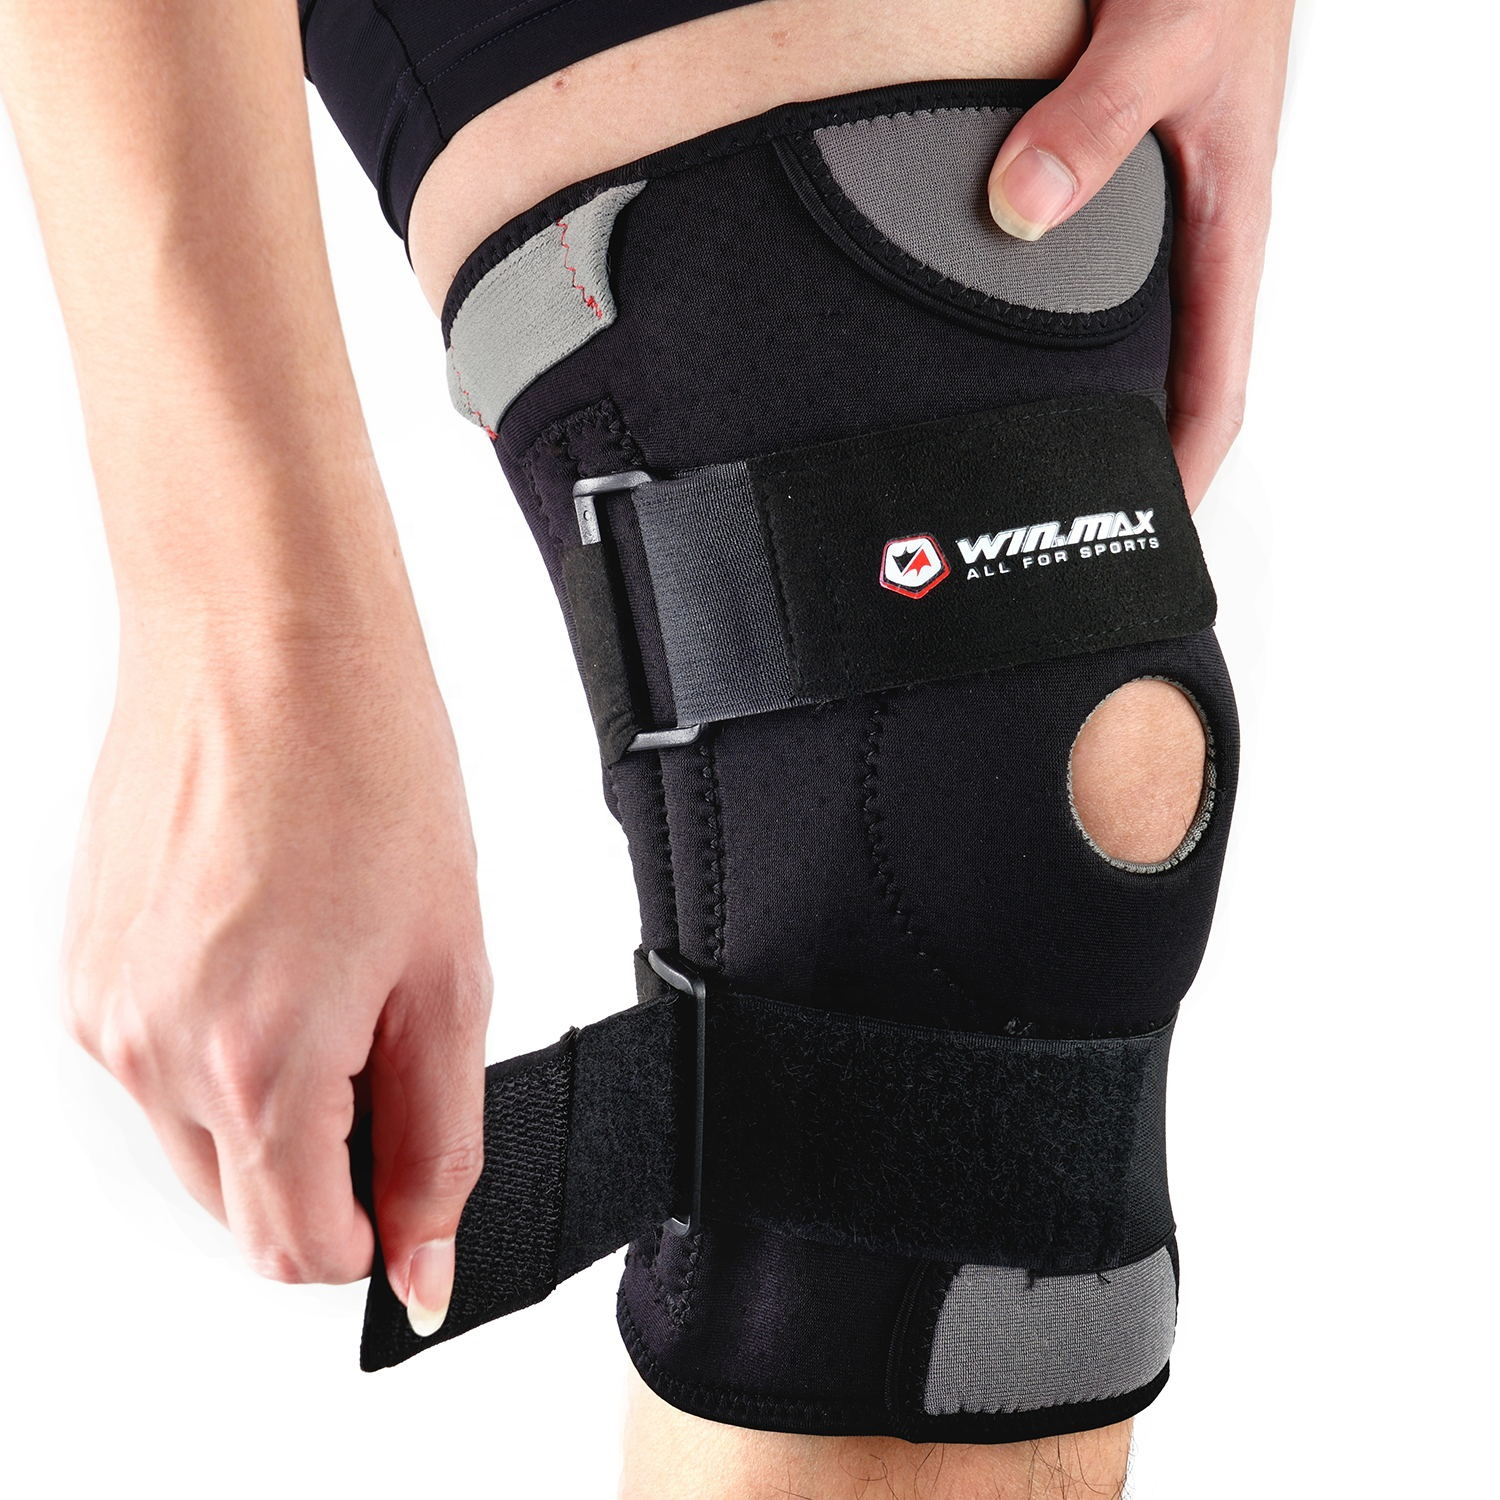 Adjustable Elasticity Breathable Knee Pad High Quality Sleeve Support Knee Brace for cycling soccer football